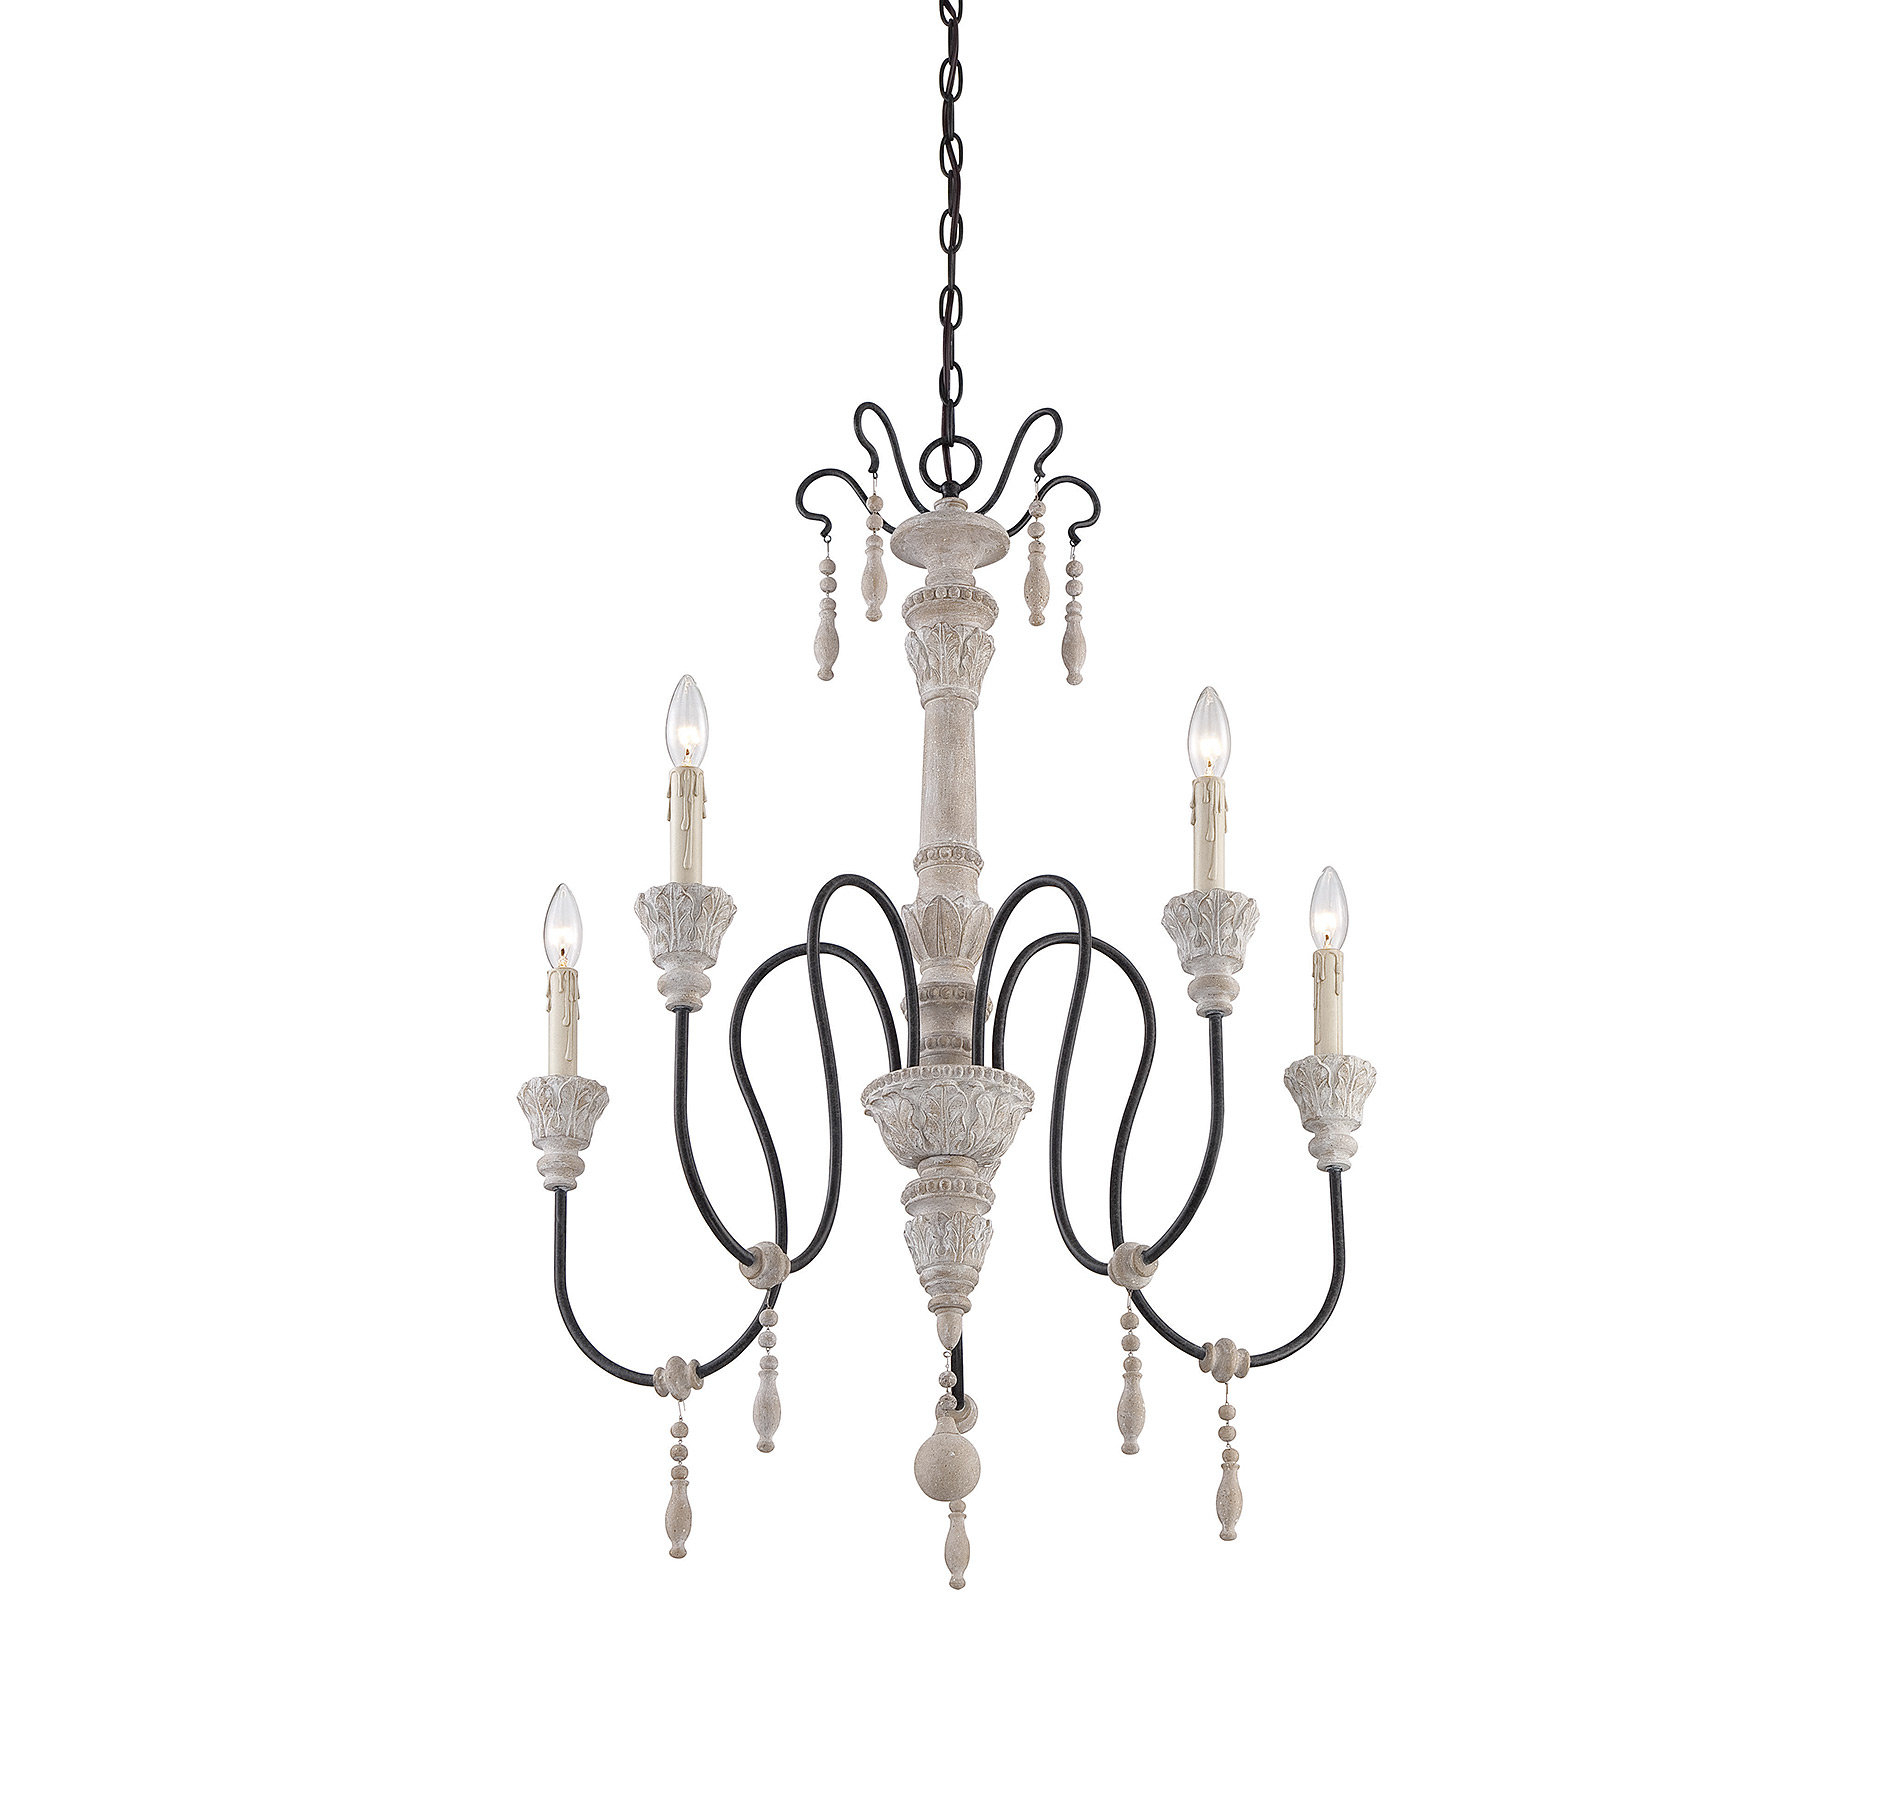 Corneau 5 Light Chandelier & Reviews | Joss & Main Within Bouchette Traditional 6 Light Candle Style Chandeliers (View 16 of 30)